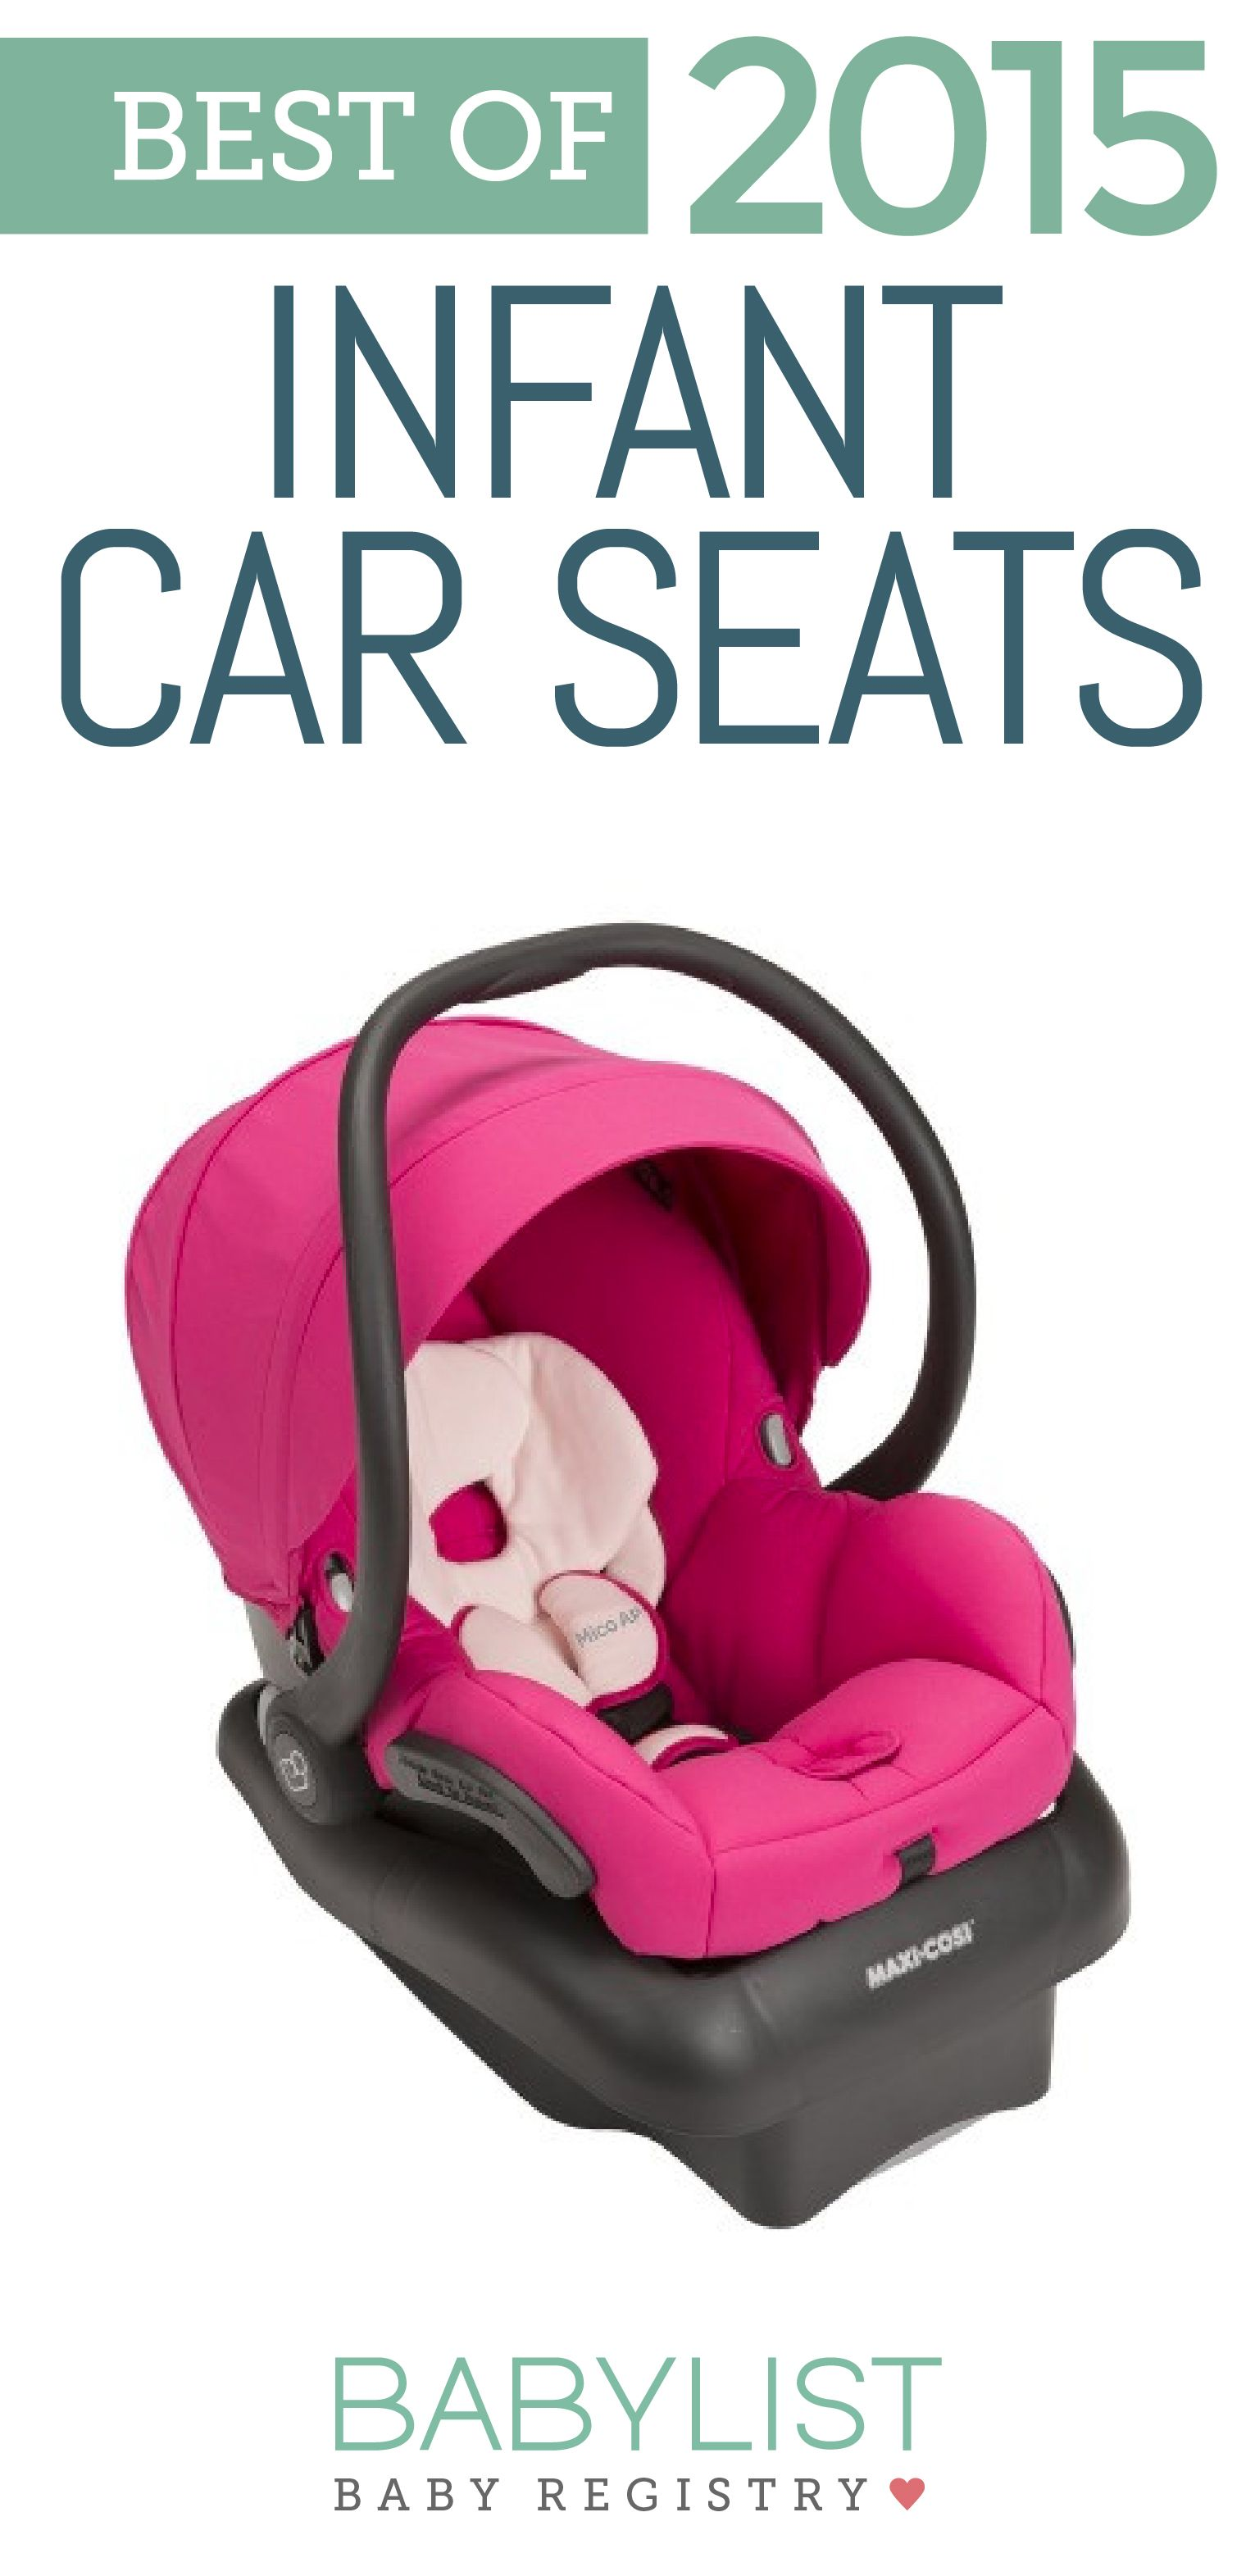 7 Best Infant Car Seats of 2018 According to Thousands of Parents